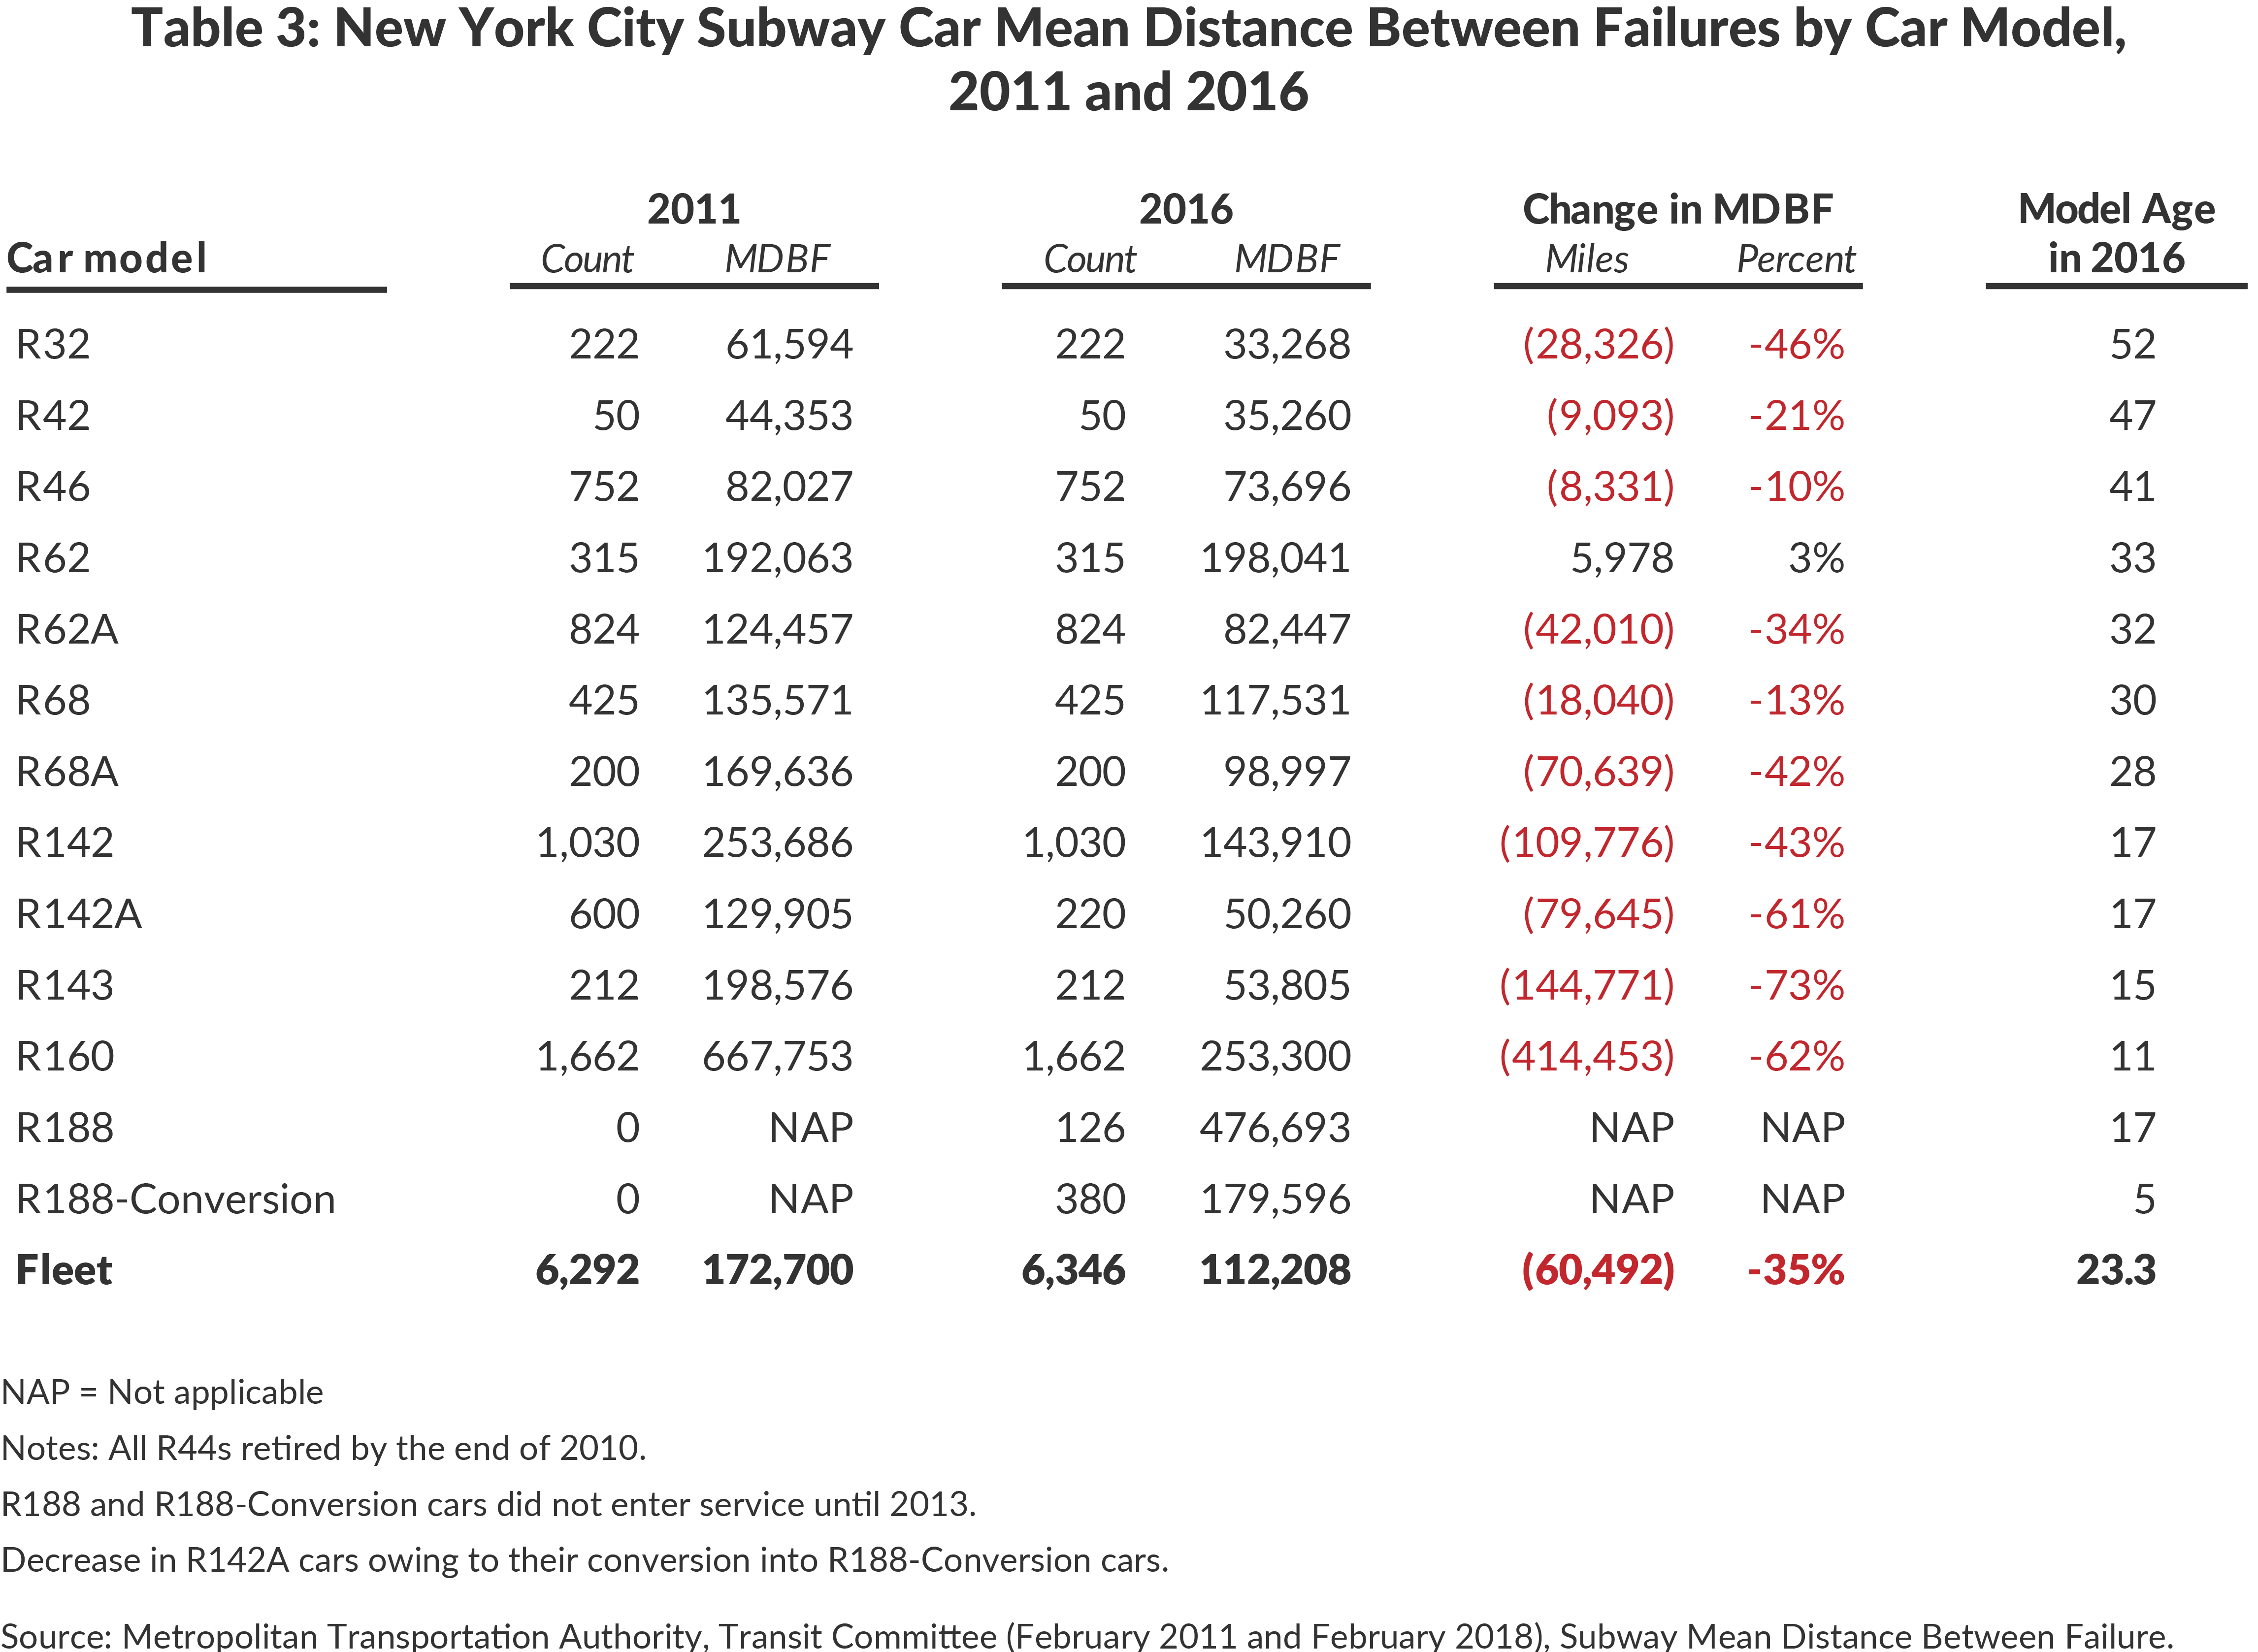 Table 3: New York City Subway Car Mean Distance Between Failures by Car Model, 2011 and 2016